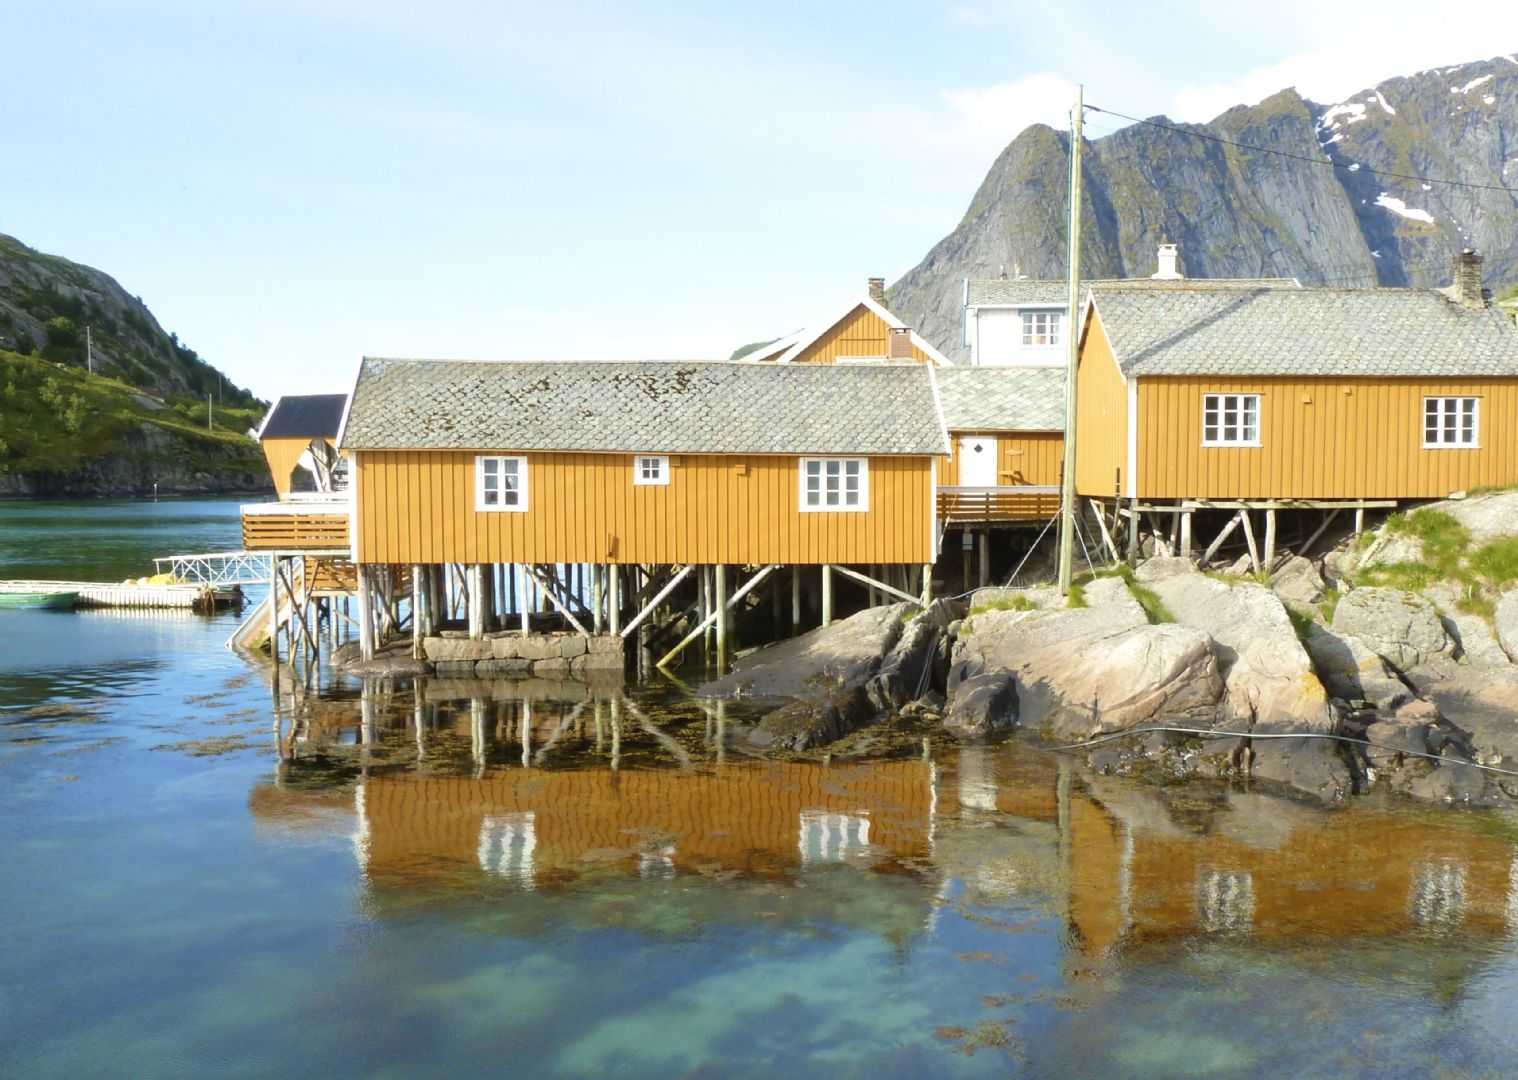 _Customer.103820.17298.jpg - Norway - Lofoten Islands - Self-Guided Leisure Cycling Holiday - Leisure Cycling